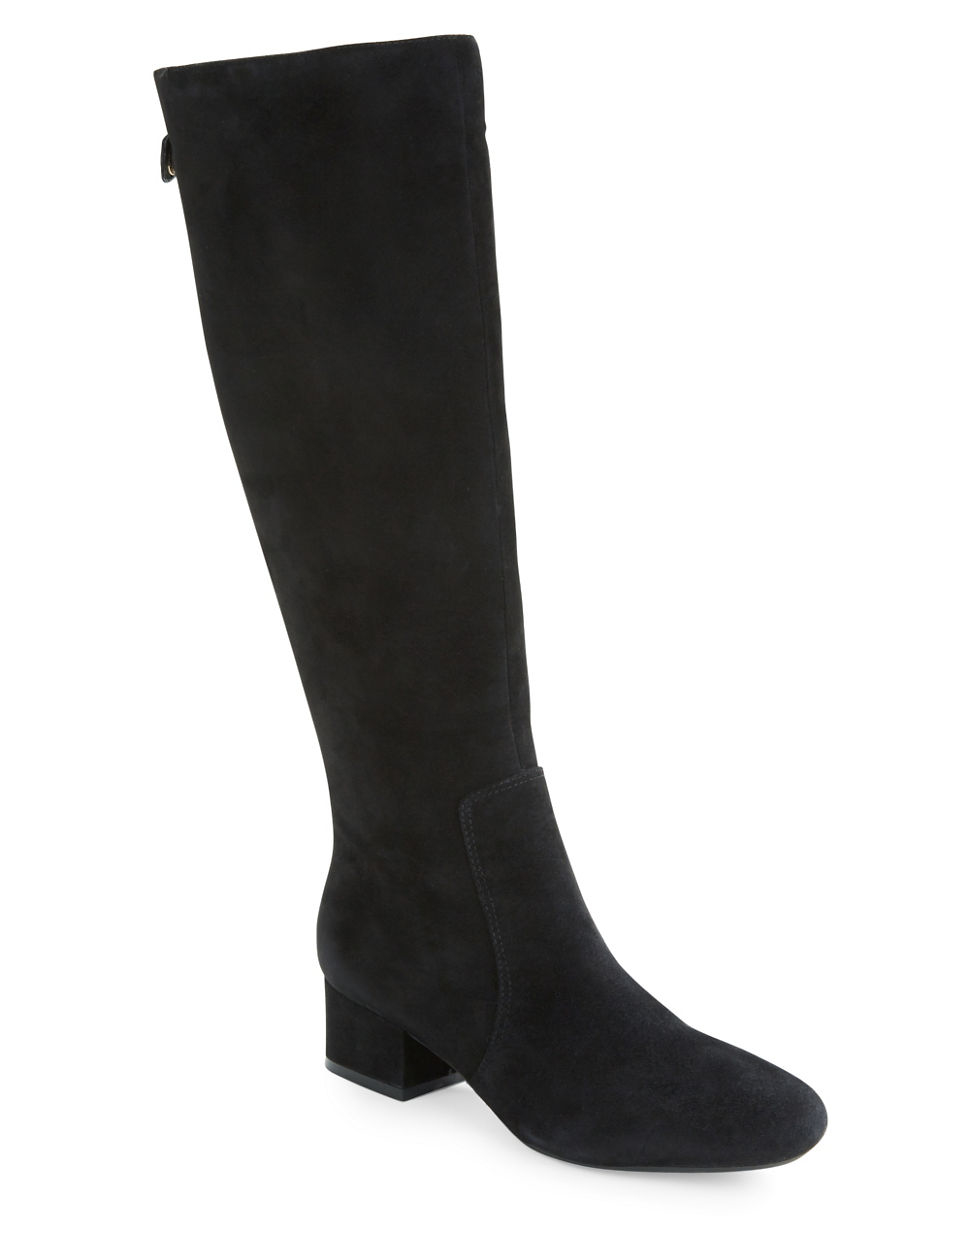 klein camden suede knee high boots in black lyst